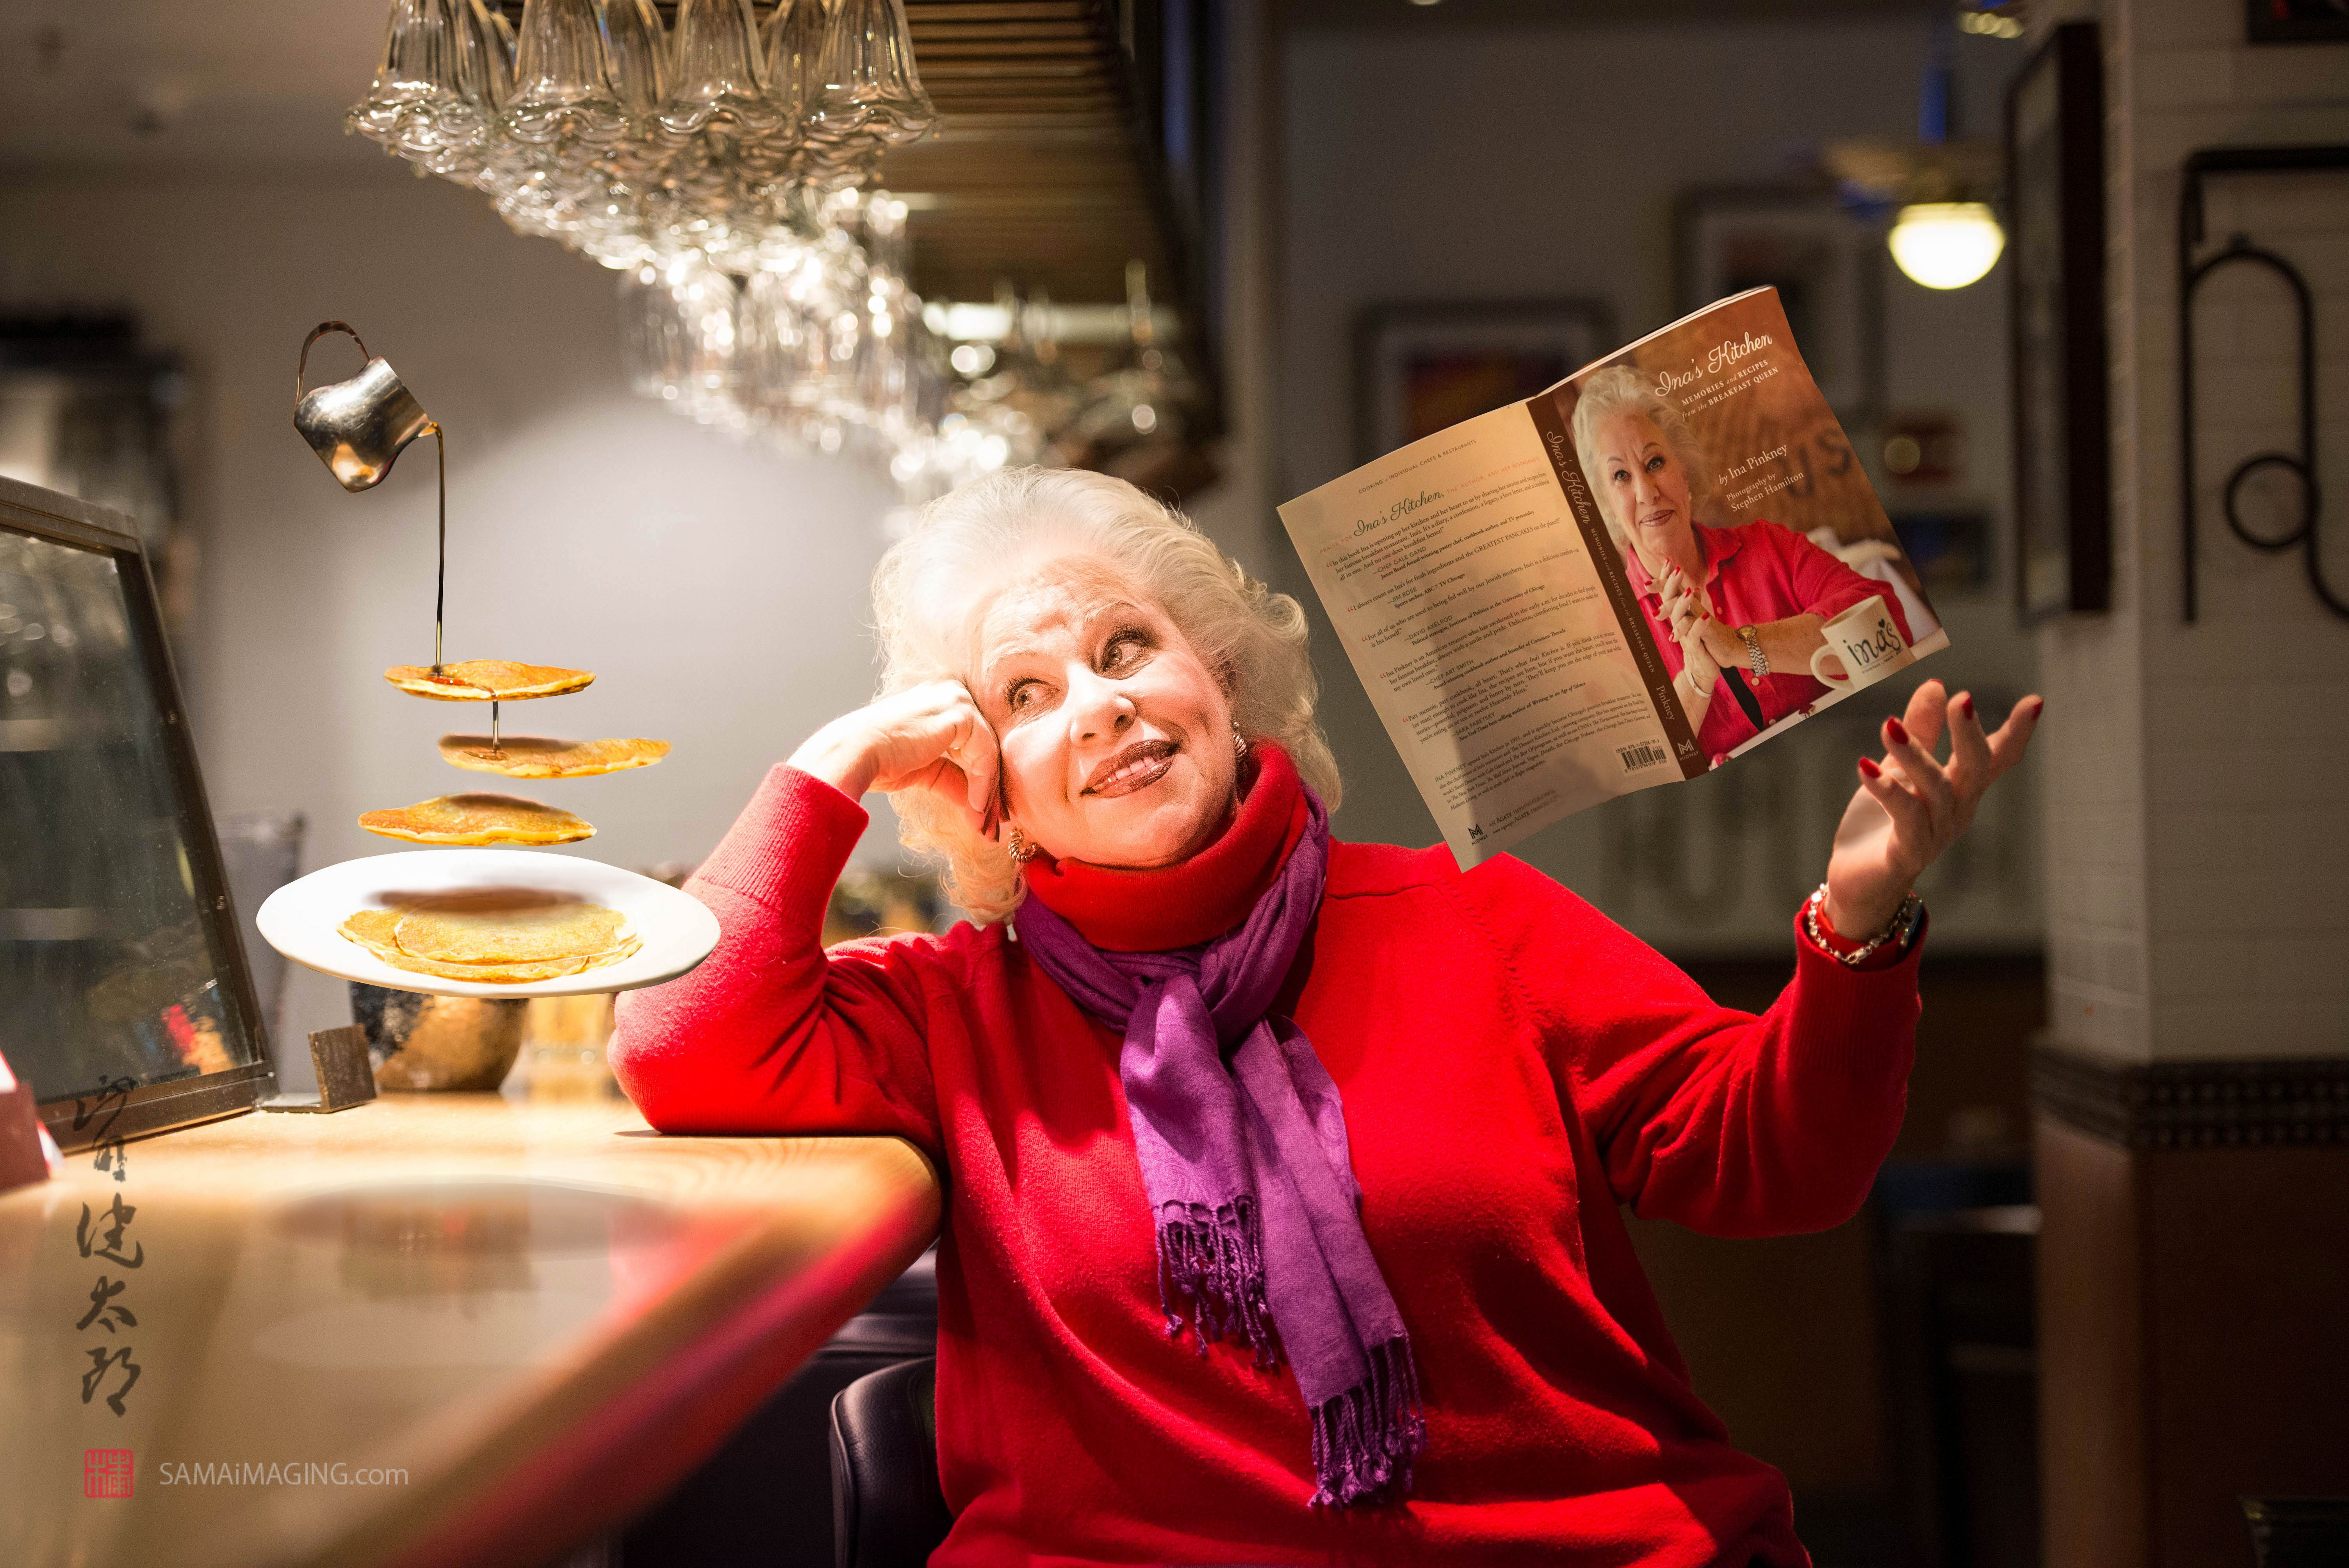 """Ina """"Breakfast Queen"""" Pinkney with her signature 'hotcakes' and her book levitated. More story, click."""